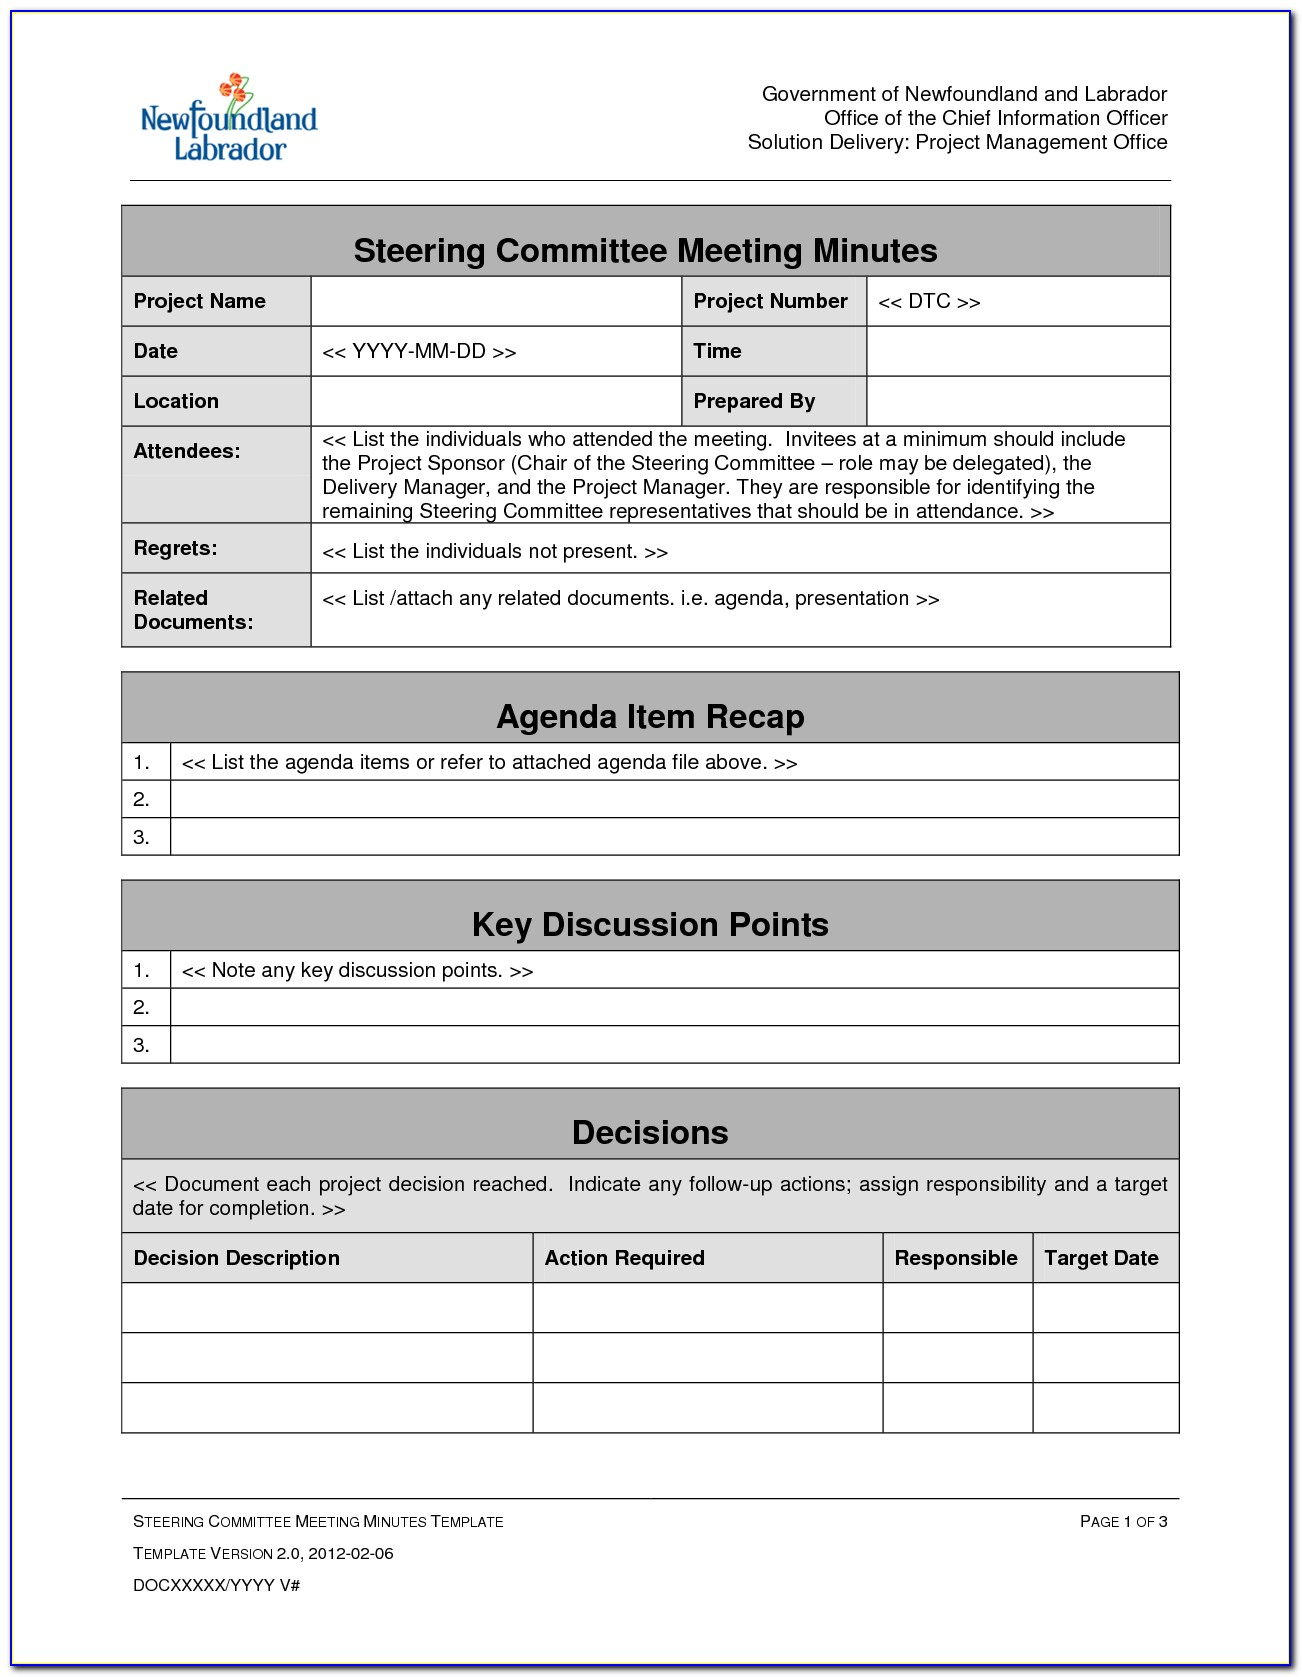 Project Management Meeting Agenda Minutes Template 1